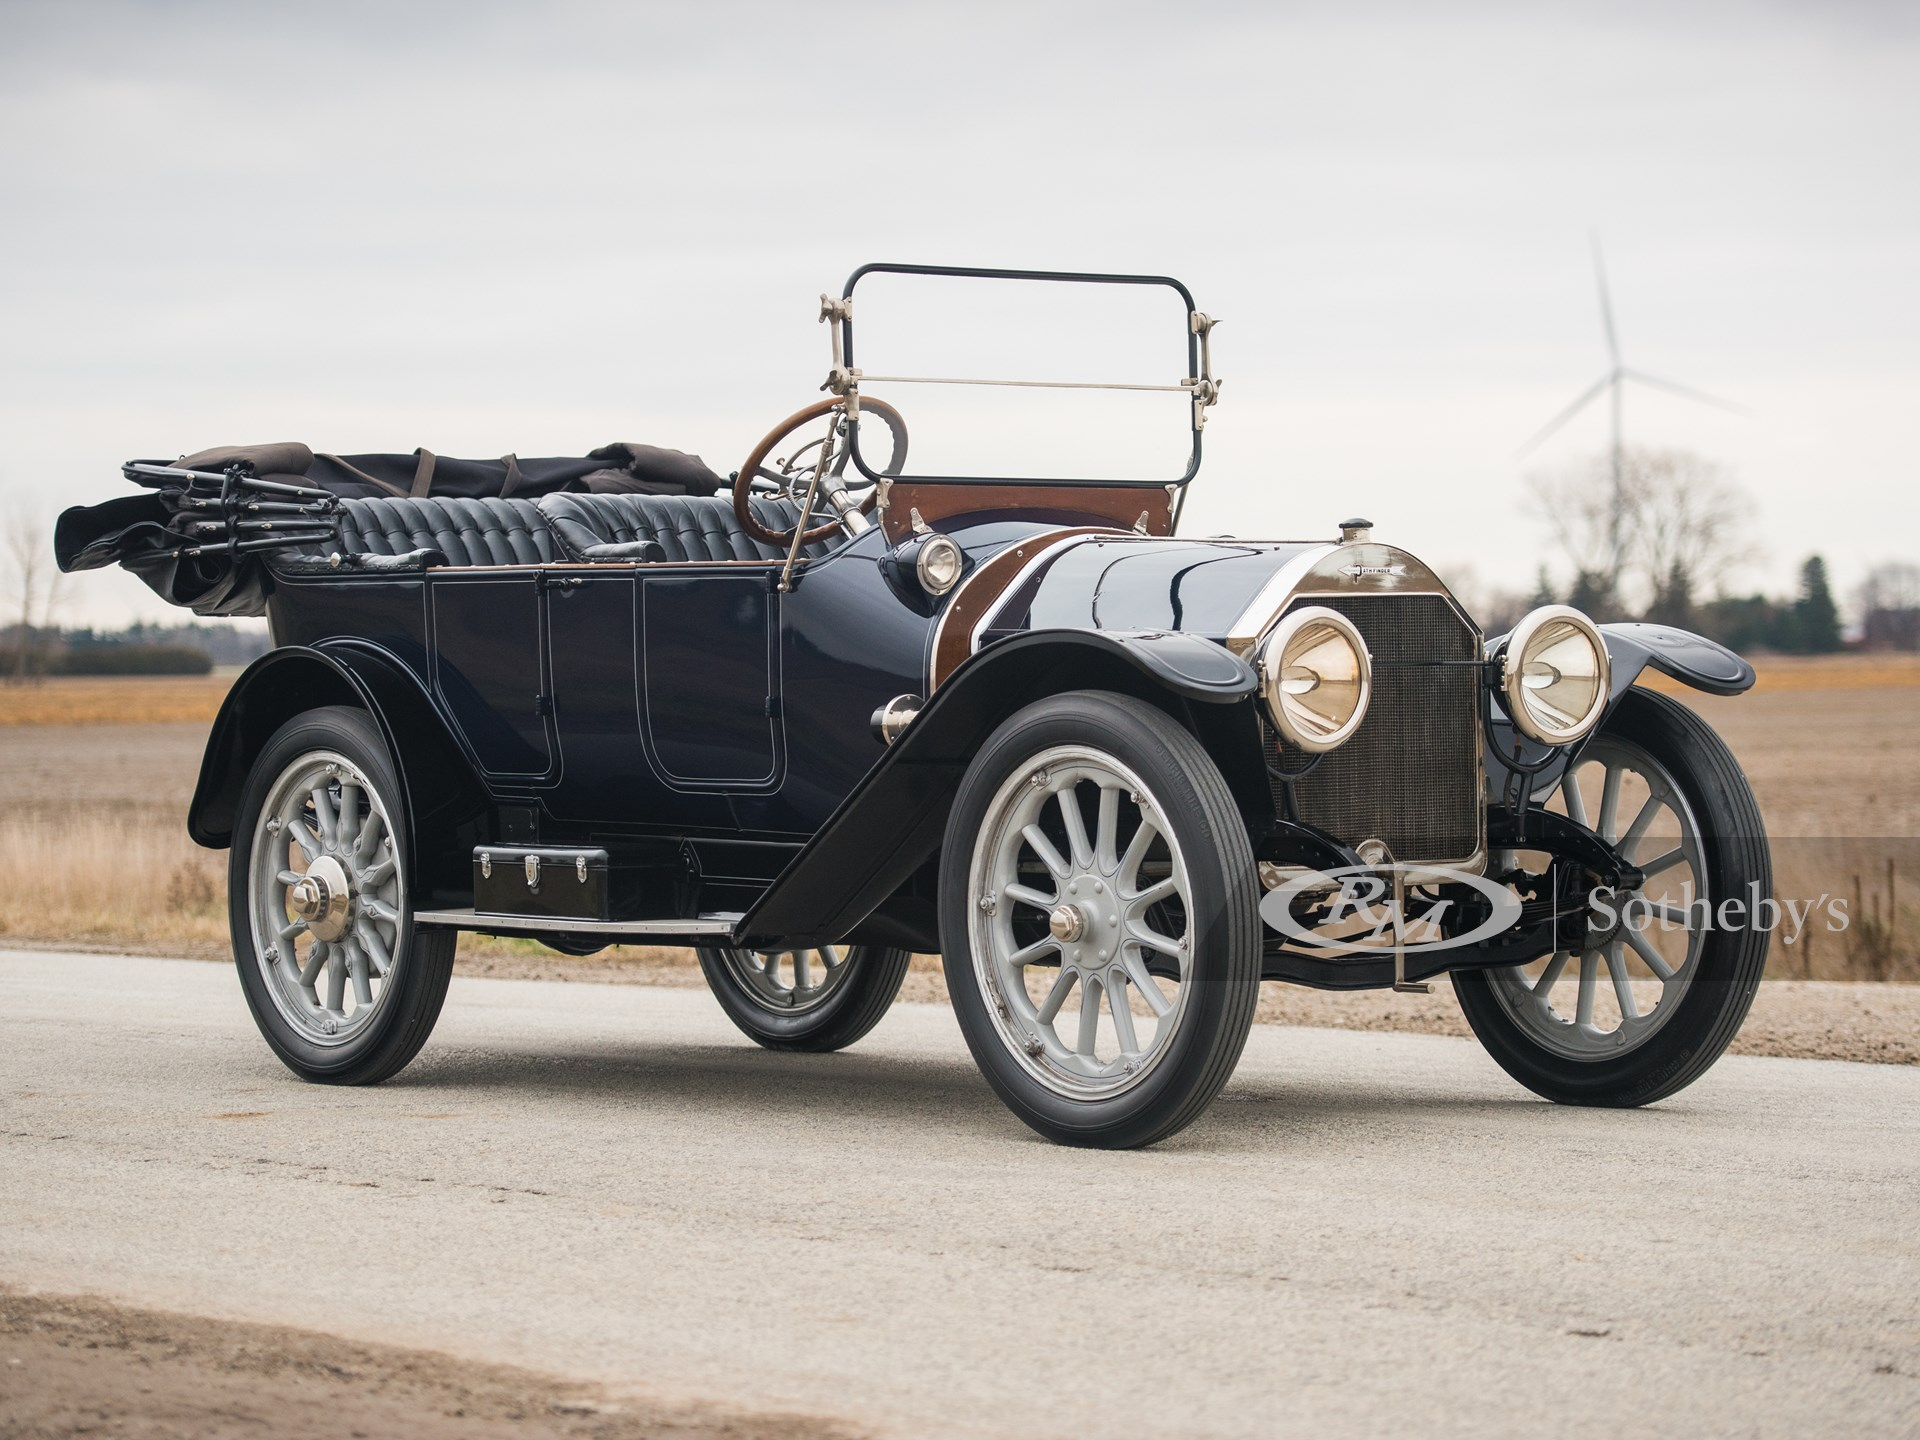 1913 Pathfinder Series XIII A Five-Passenger Touring